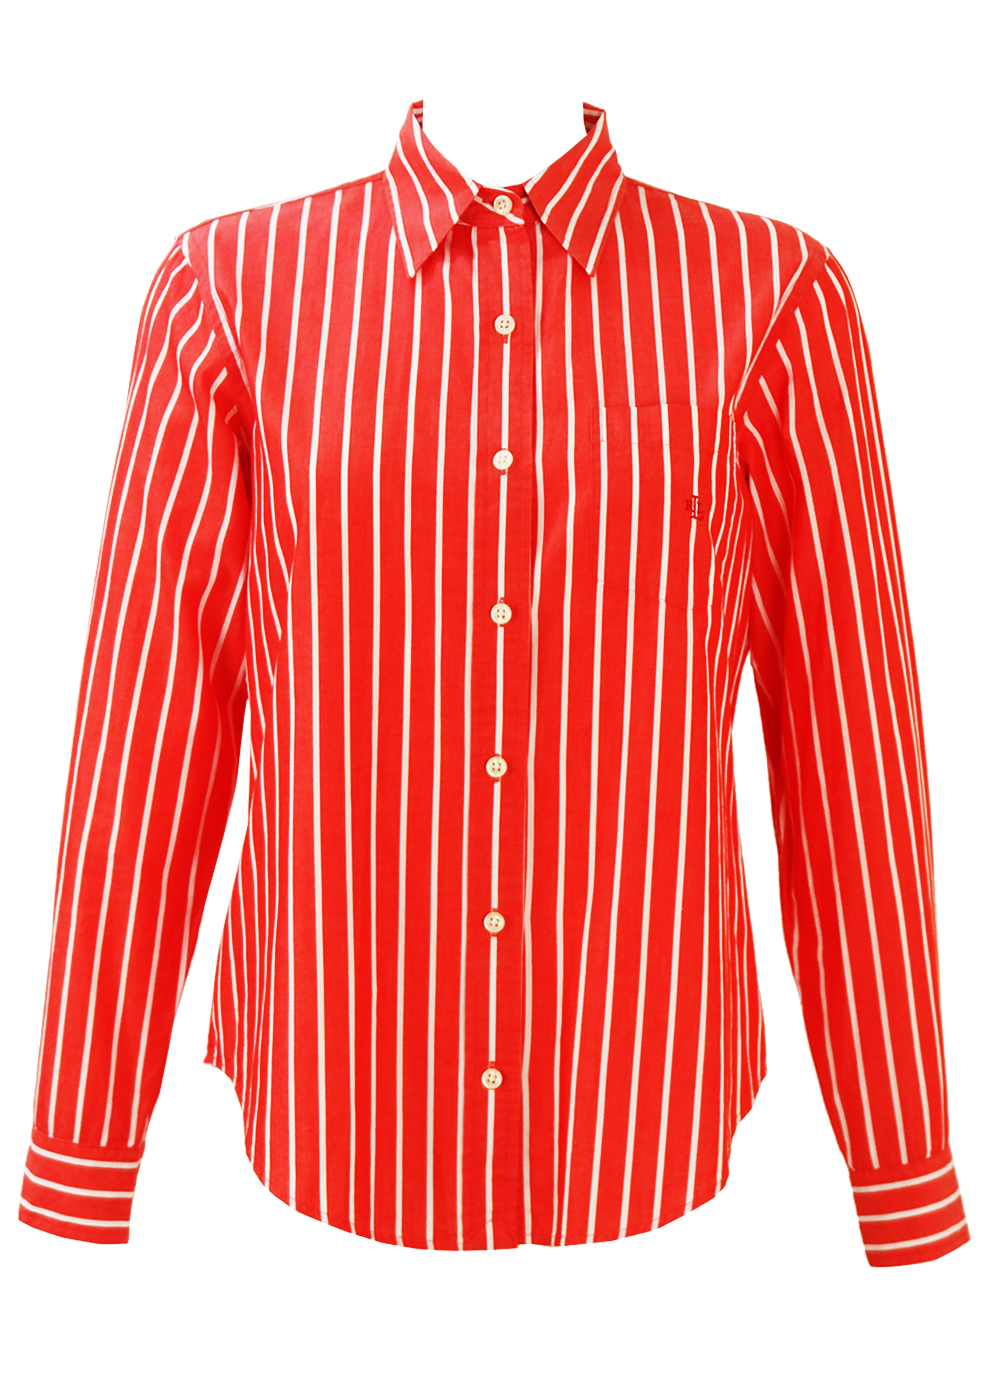 a630bd650def3 Ralph Lauren Red and White Striped Shirt – S M – Reign Vintage